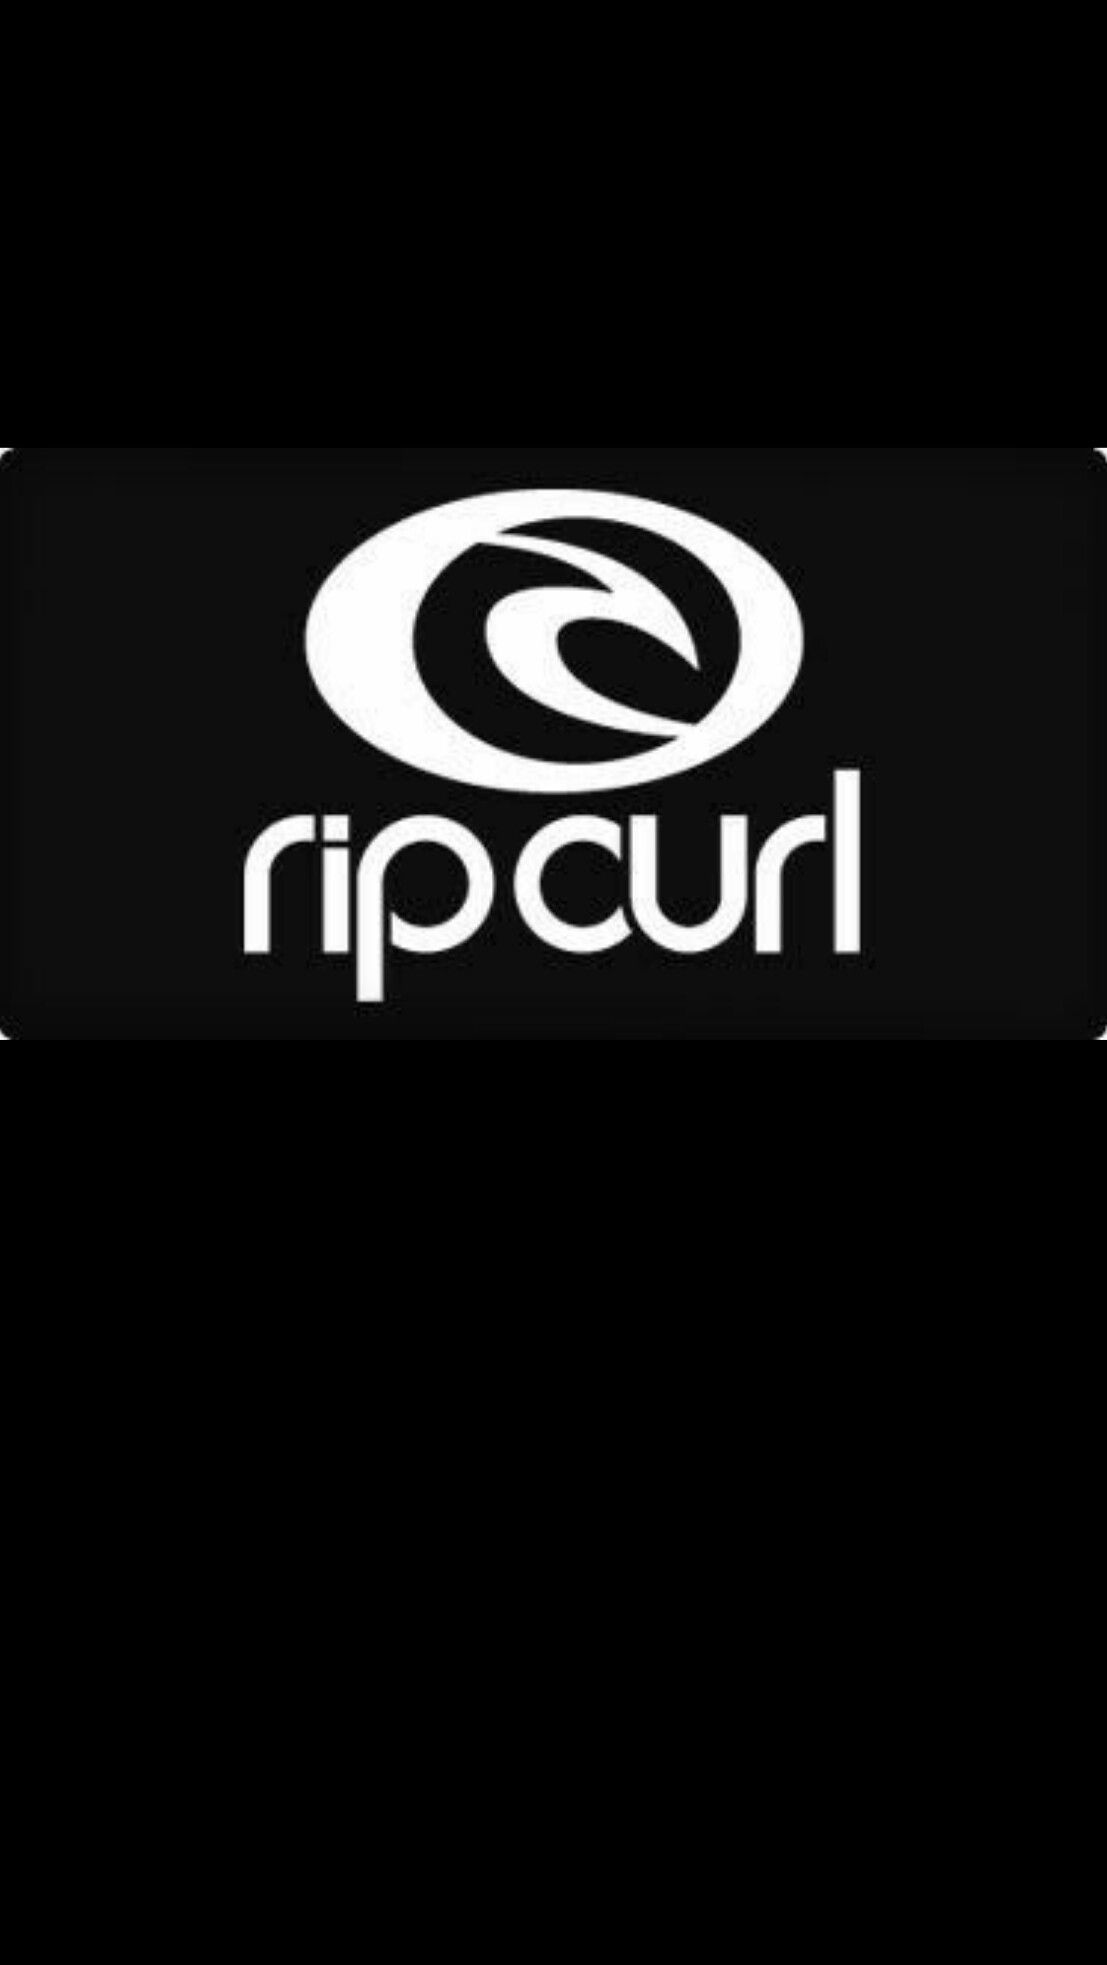 1107x1965 ripcurl #black #wallpaper #iPhone #android | Brand or Logo ...